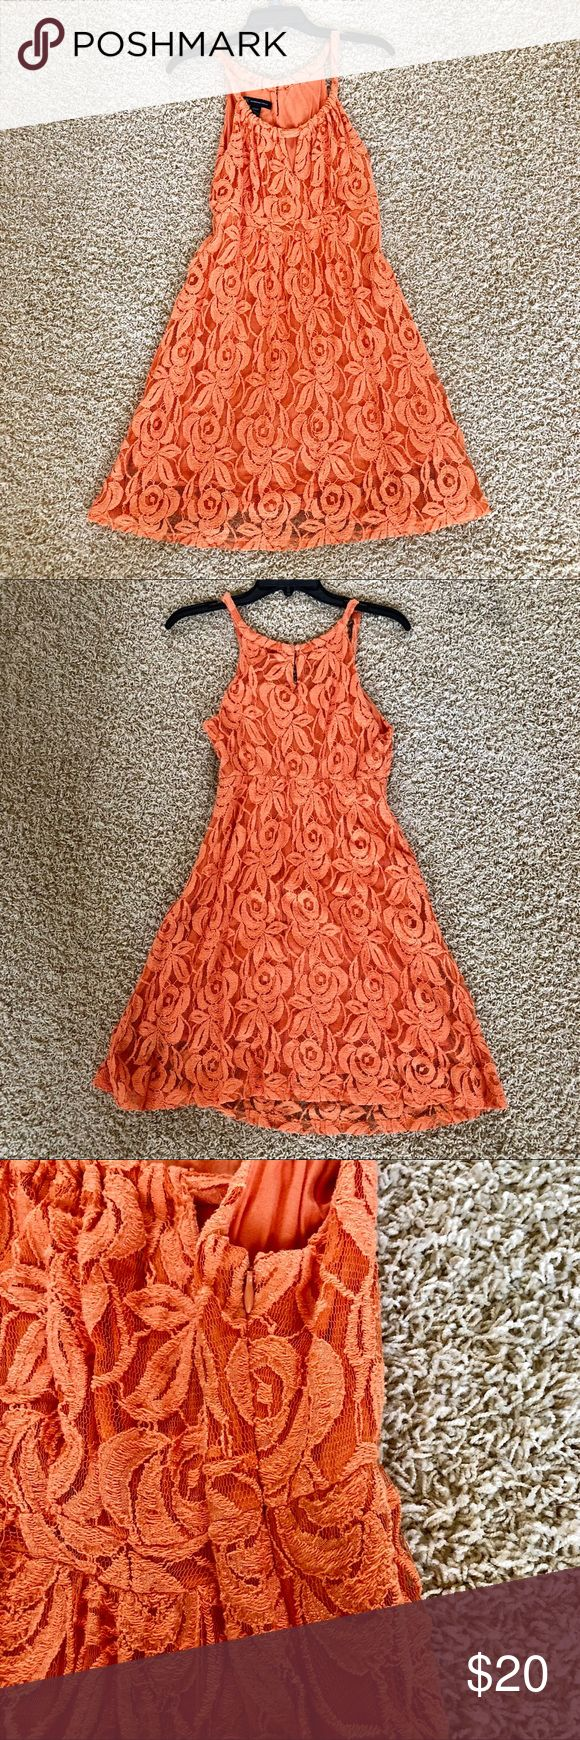 "INC Orange Lace Dress INC orange flower lace dress. Dress has a side zipper and a triangle opening in the front. Dress is lined.  Dress is approximately 36"" long from top to bottom.   Worn once, great condition. INC International Concepts Dresses Midi"